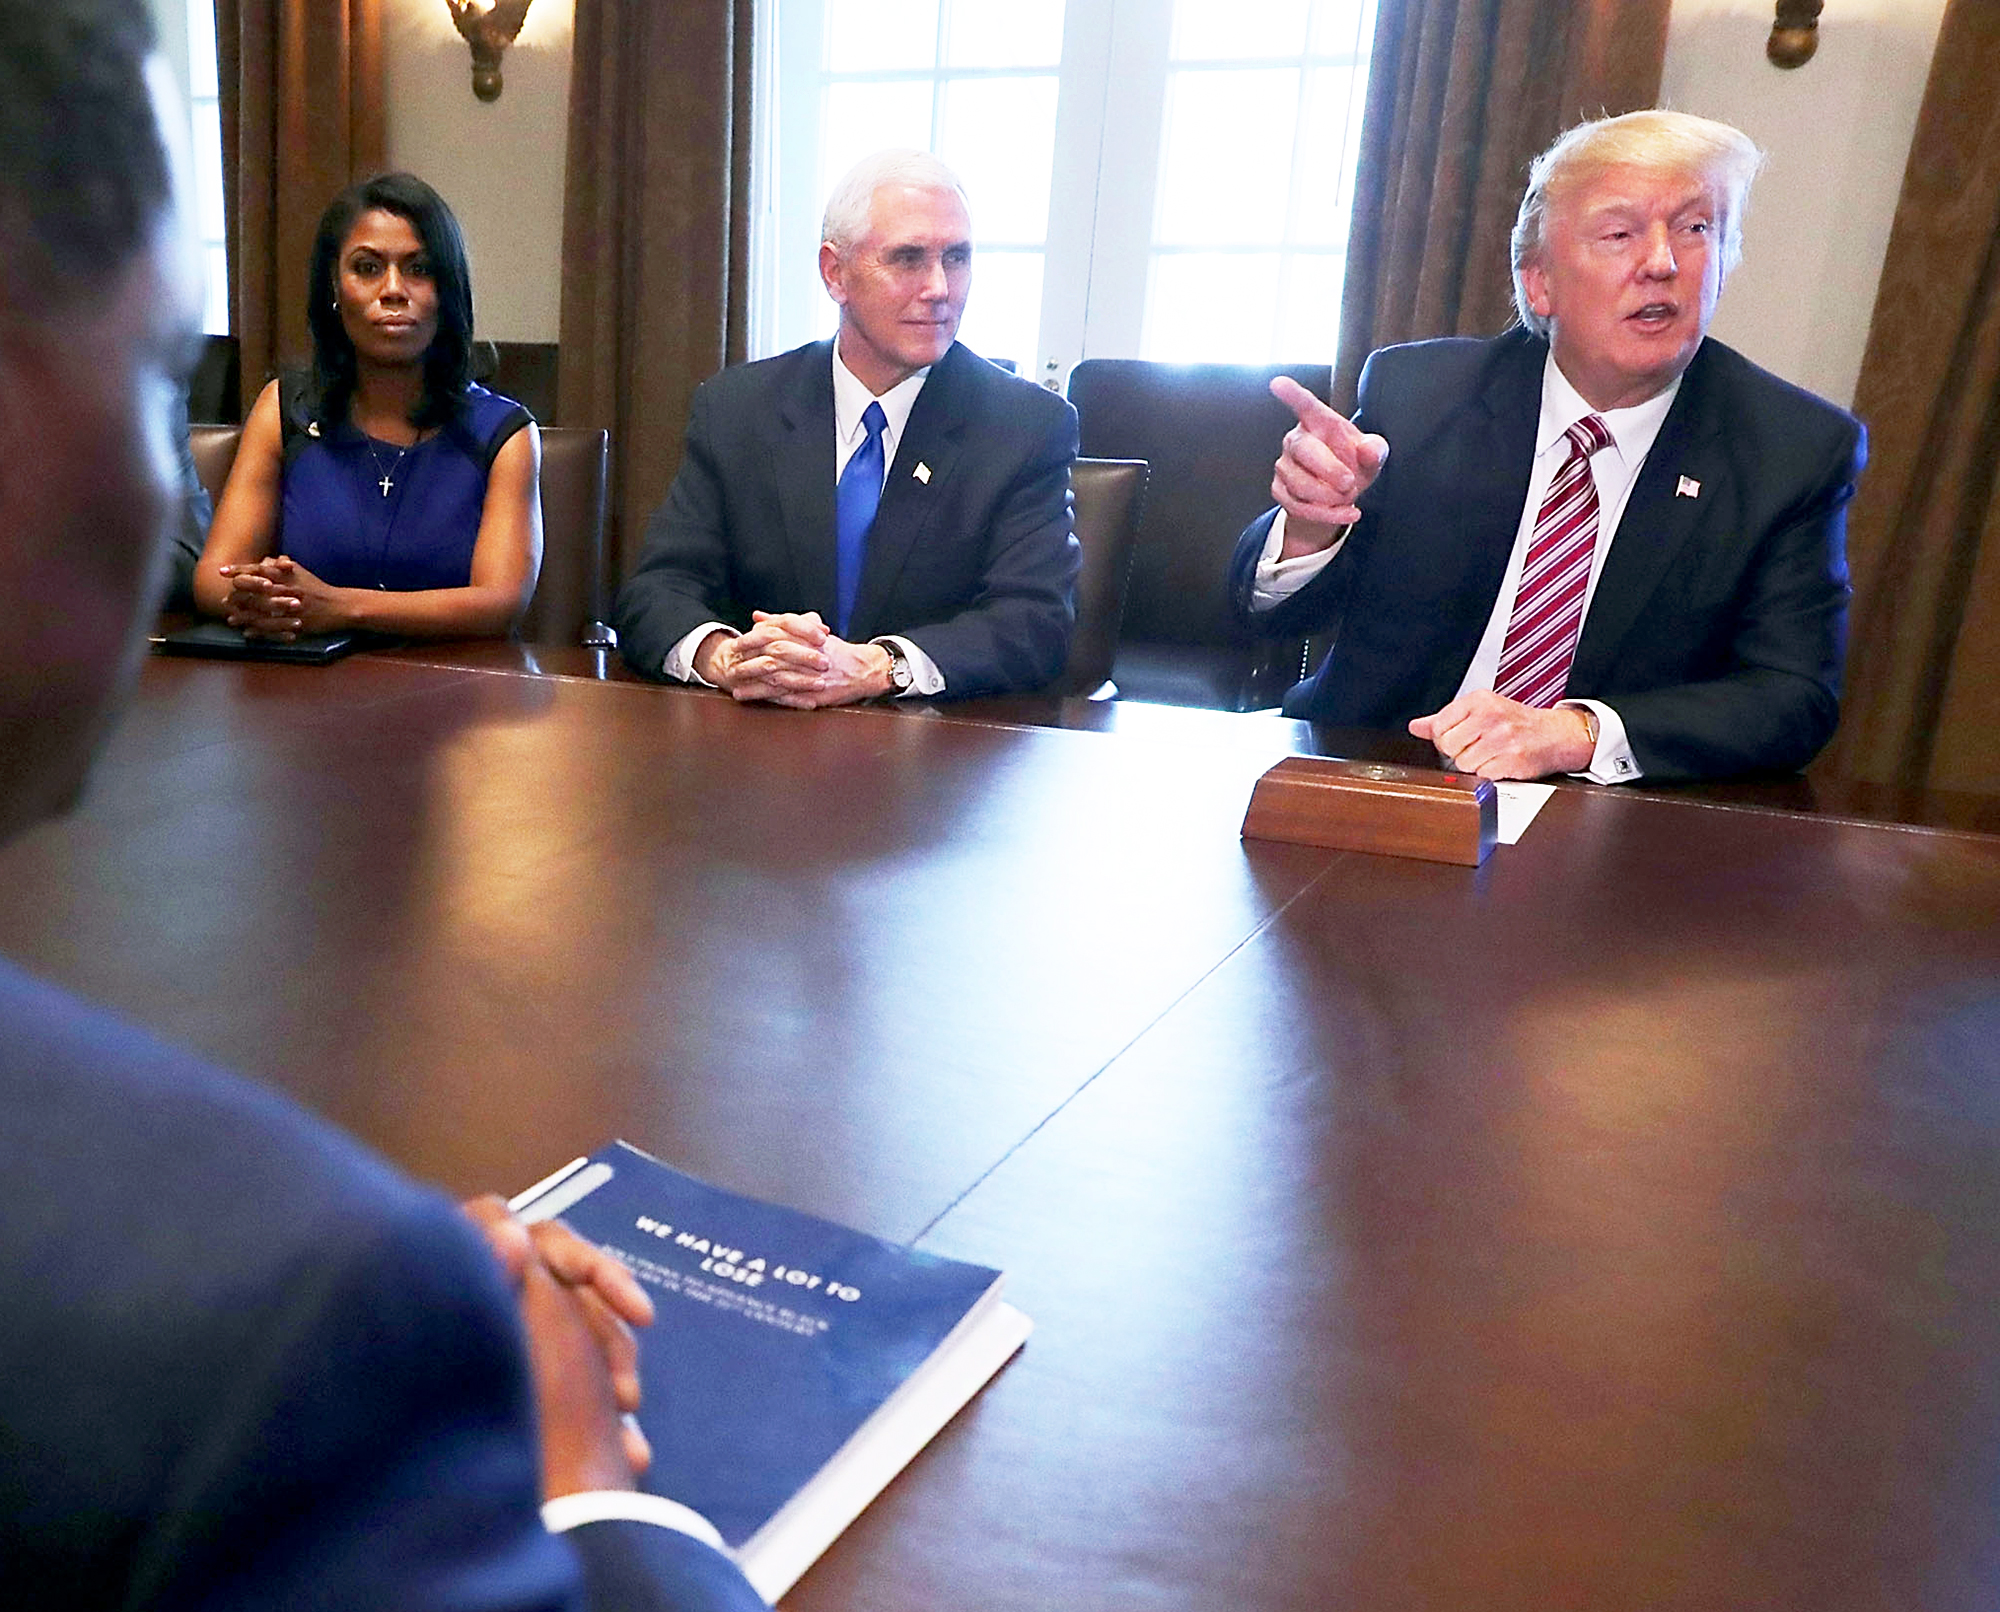 Omarosa Manigault, Mike Pence and Donald Trump during a assembly with the Congressional Black Caucus Executive Committee in the Cabinet Room at the White House Mar 22, 2017 in Washington, DC.